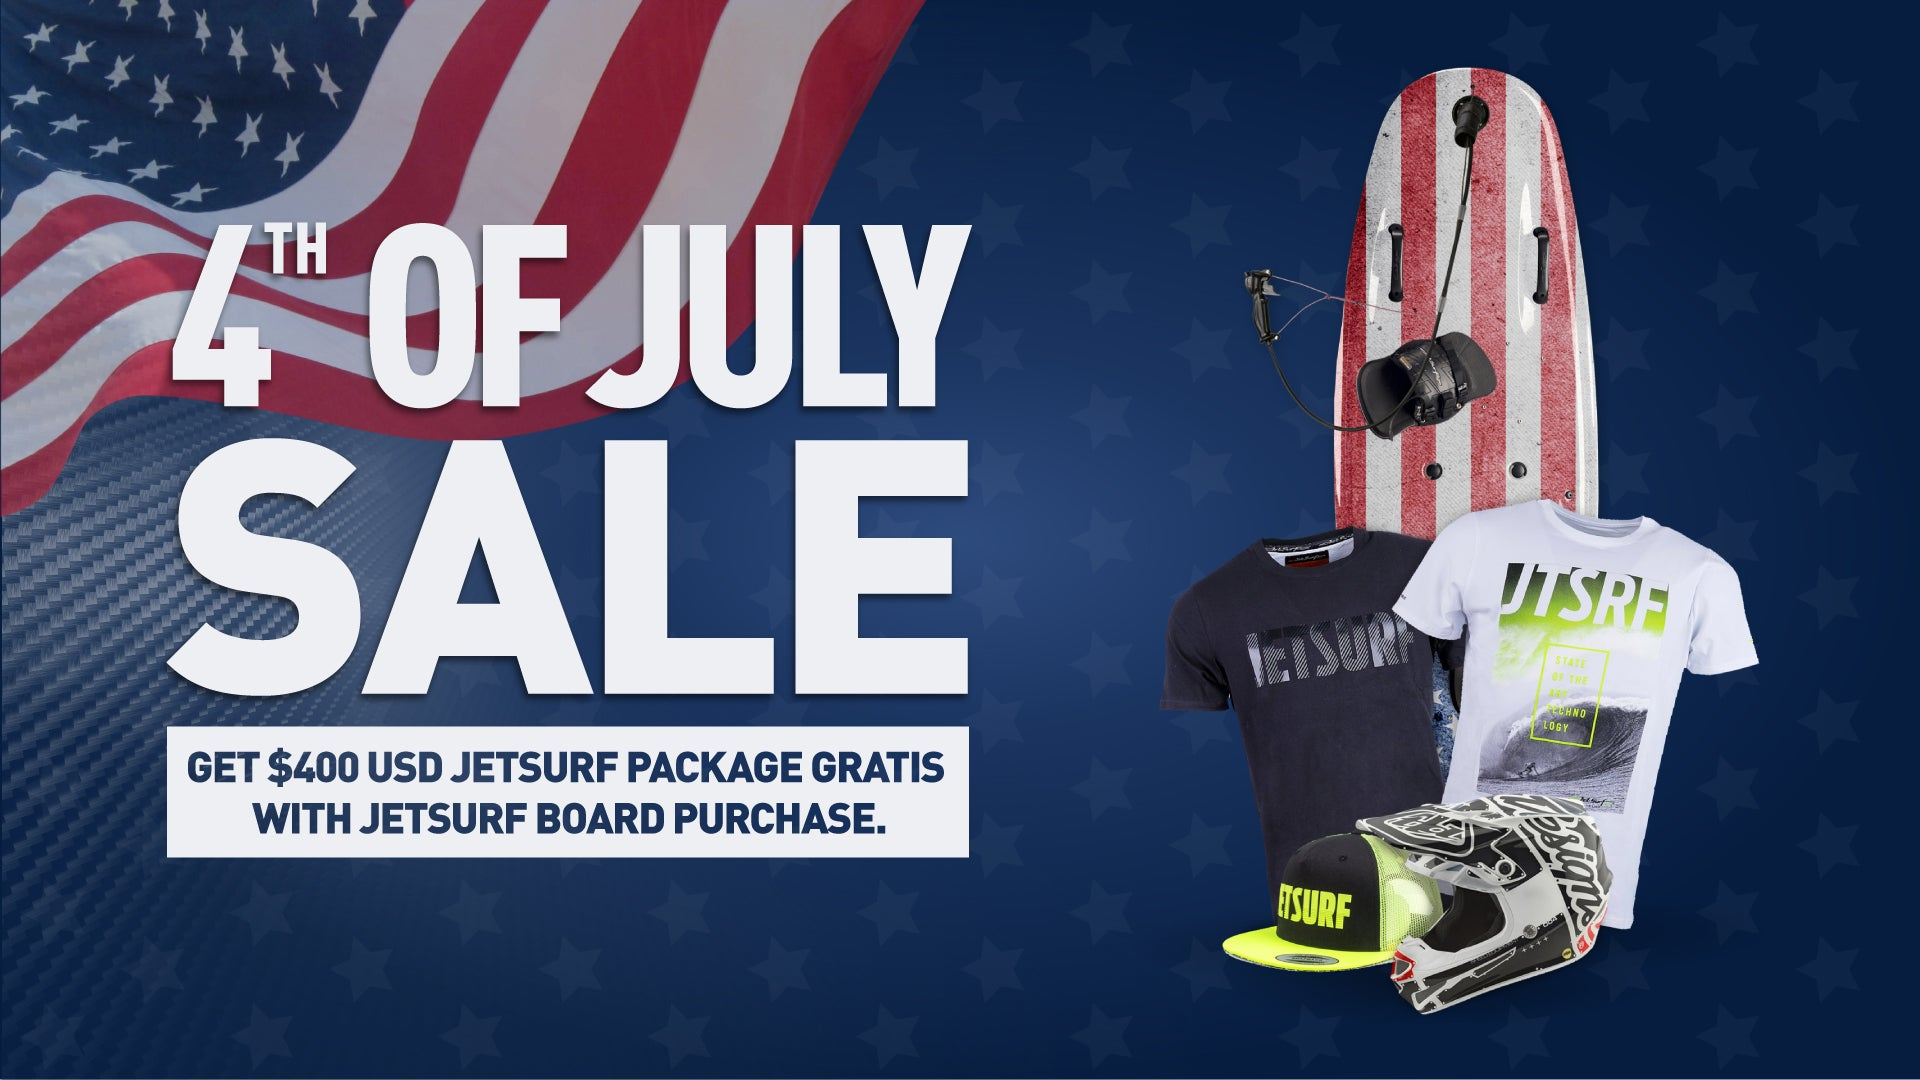 4th of July JetSurf deal